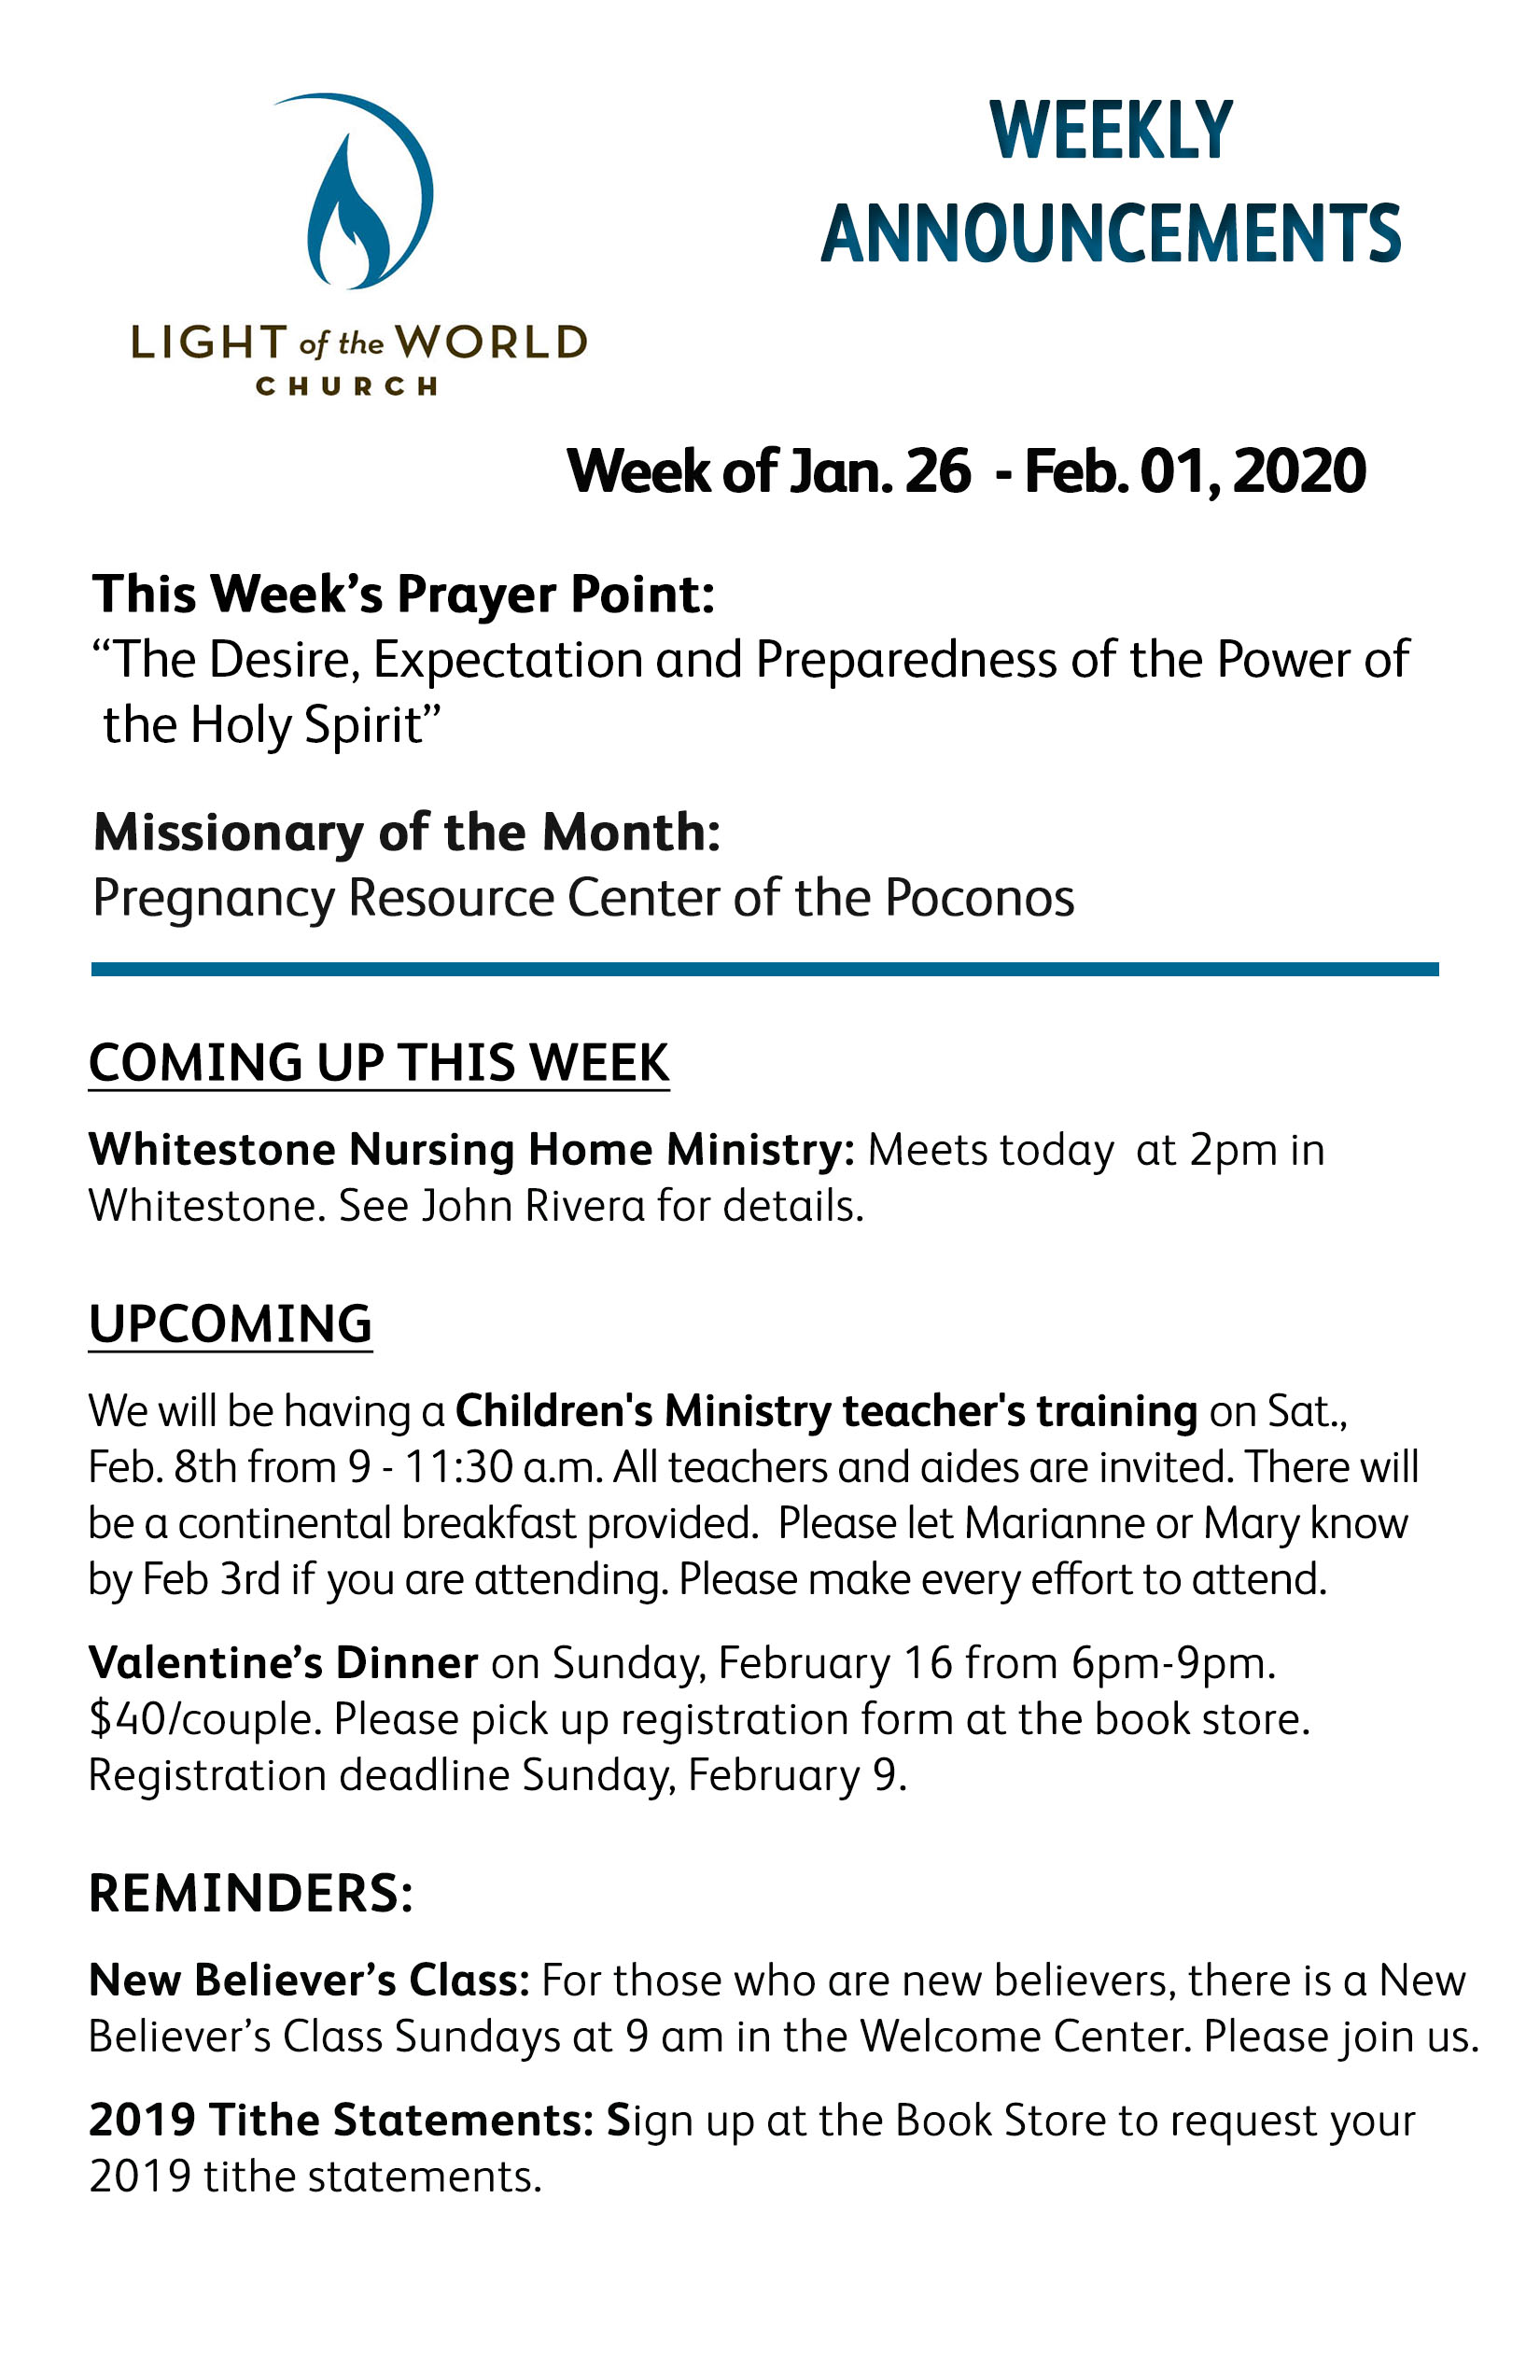 Jan 26-2020 Weekly Announcements Front for Web